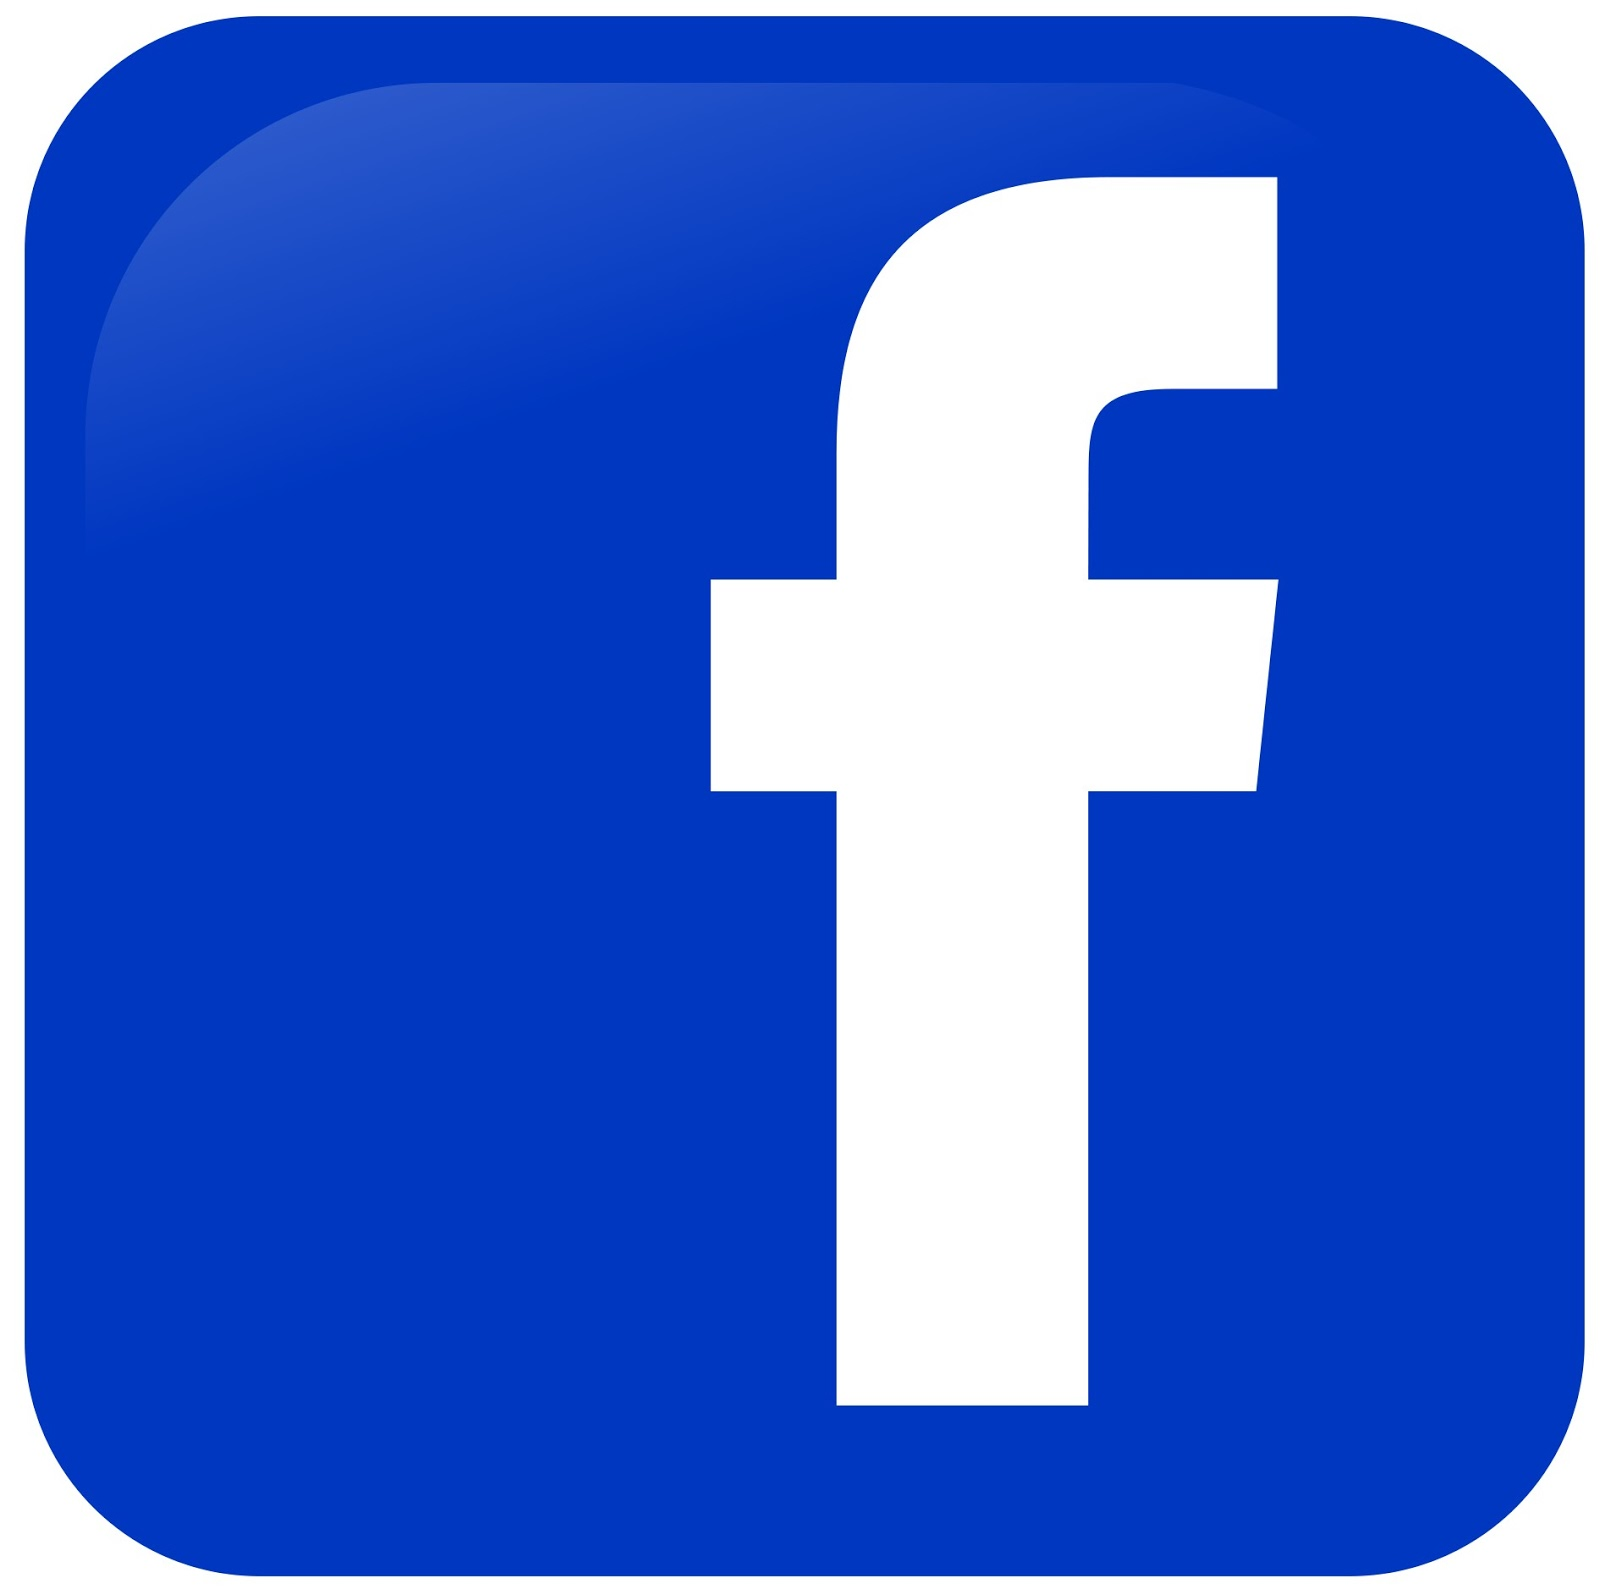 Facebook Logo Vector Free Download-Facebook Logo Vector Free Download-12